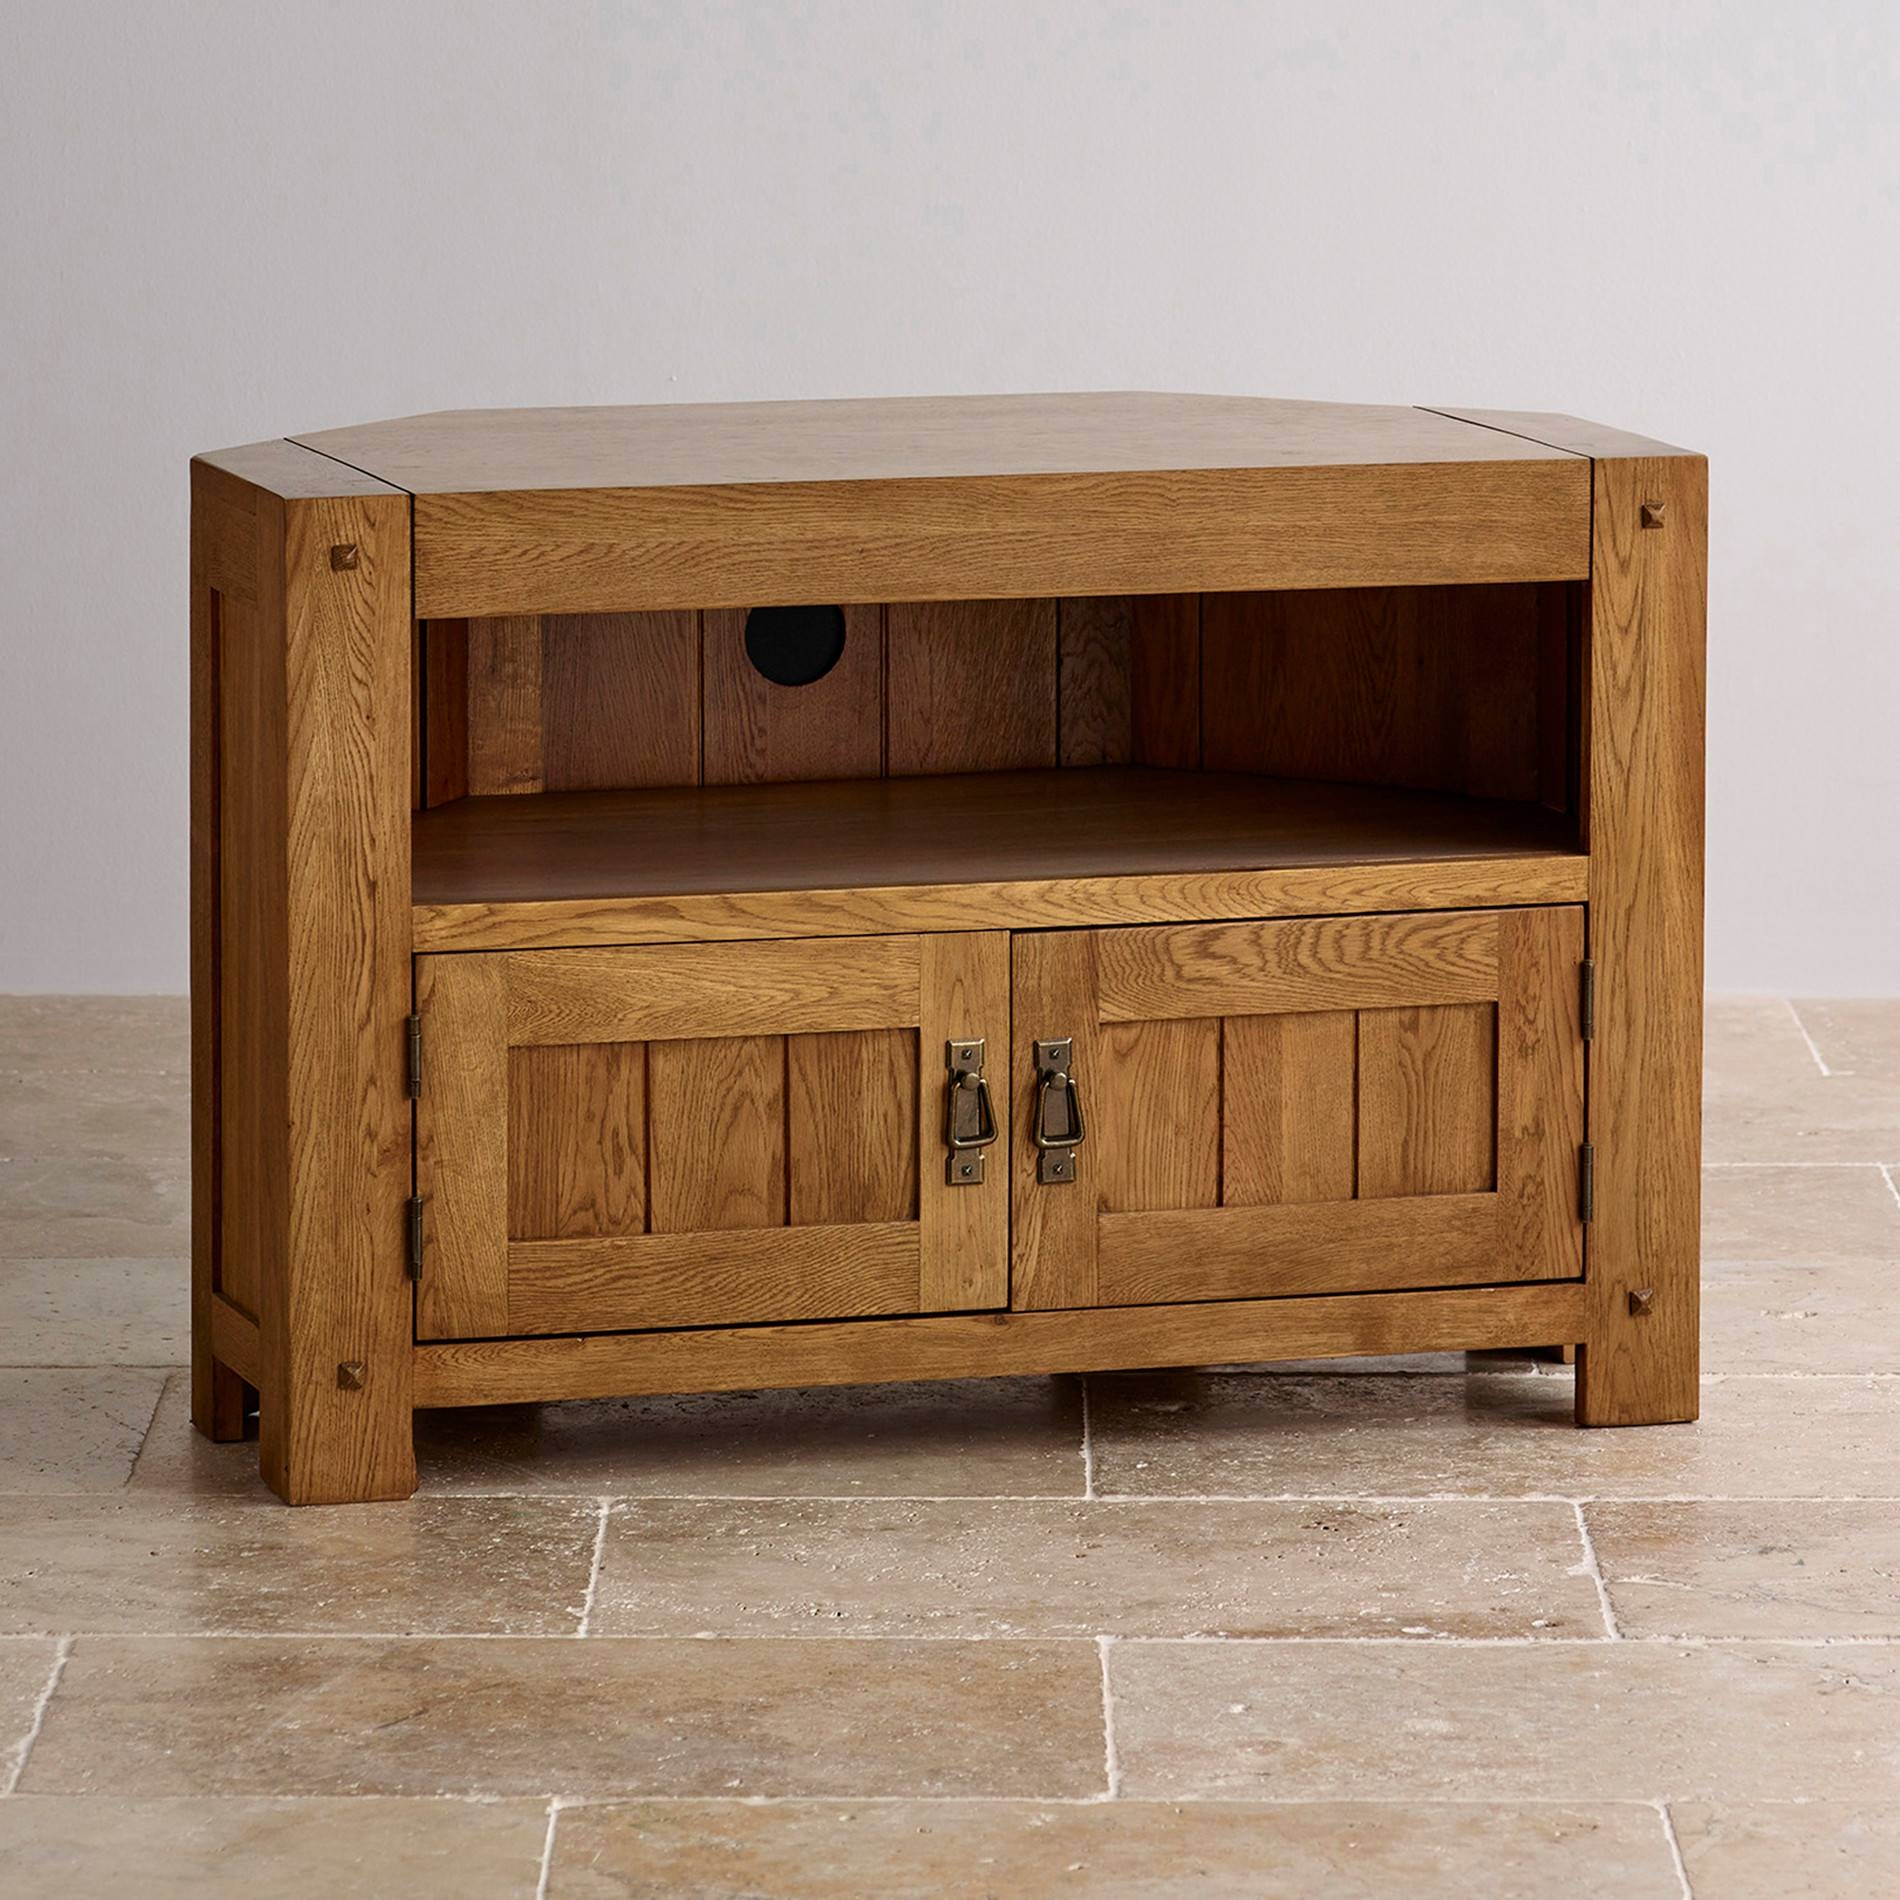 Quercus Corner Tv Cabinet In Rustic Oak | Oak Furniture Land regarding Corner Oak Tv Stands for Flat Screen (Image 5 of 15)